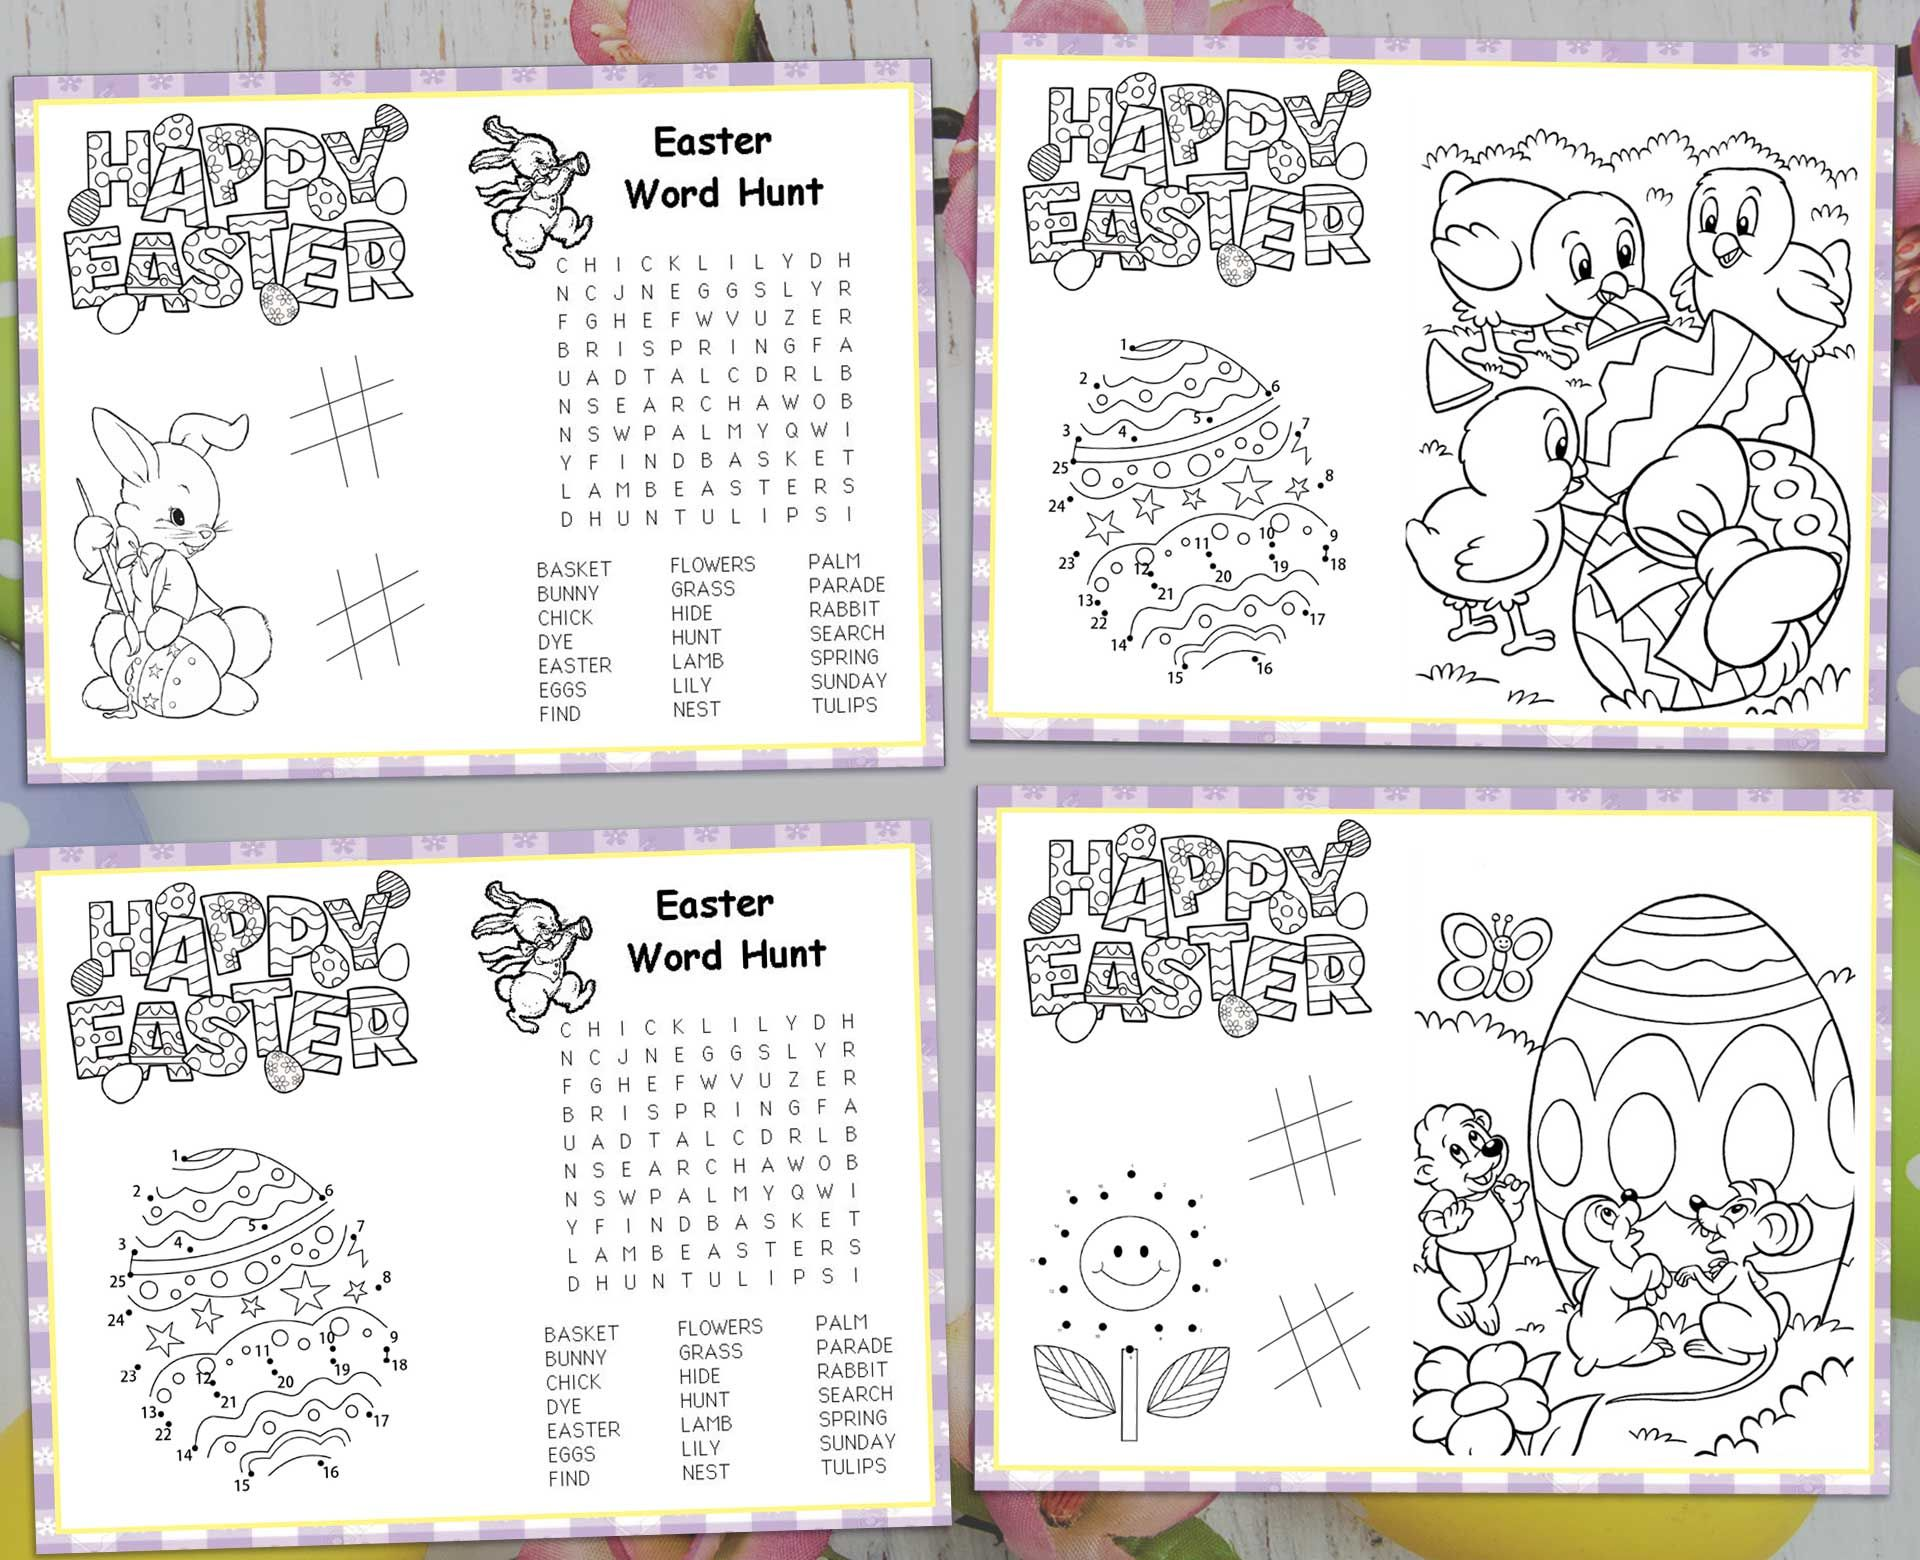 Easter activity placemat for kids set of 4 placemat templates easter activity placemat for kids set of 4 placemat templates easter holiday games decoration choose your background maxwellsz